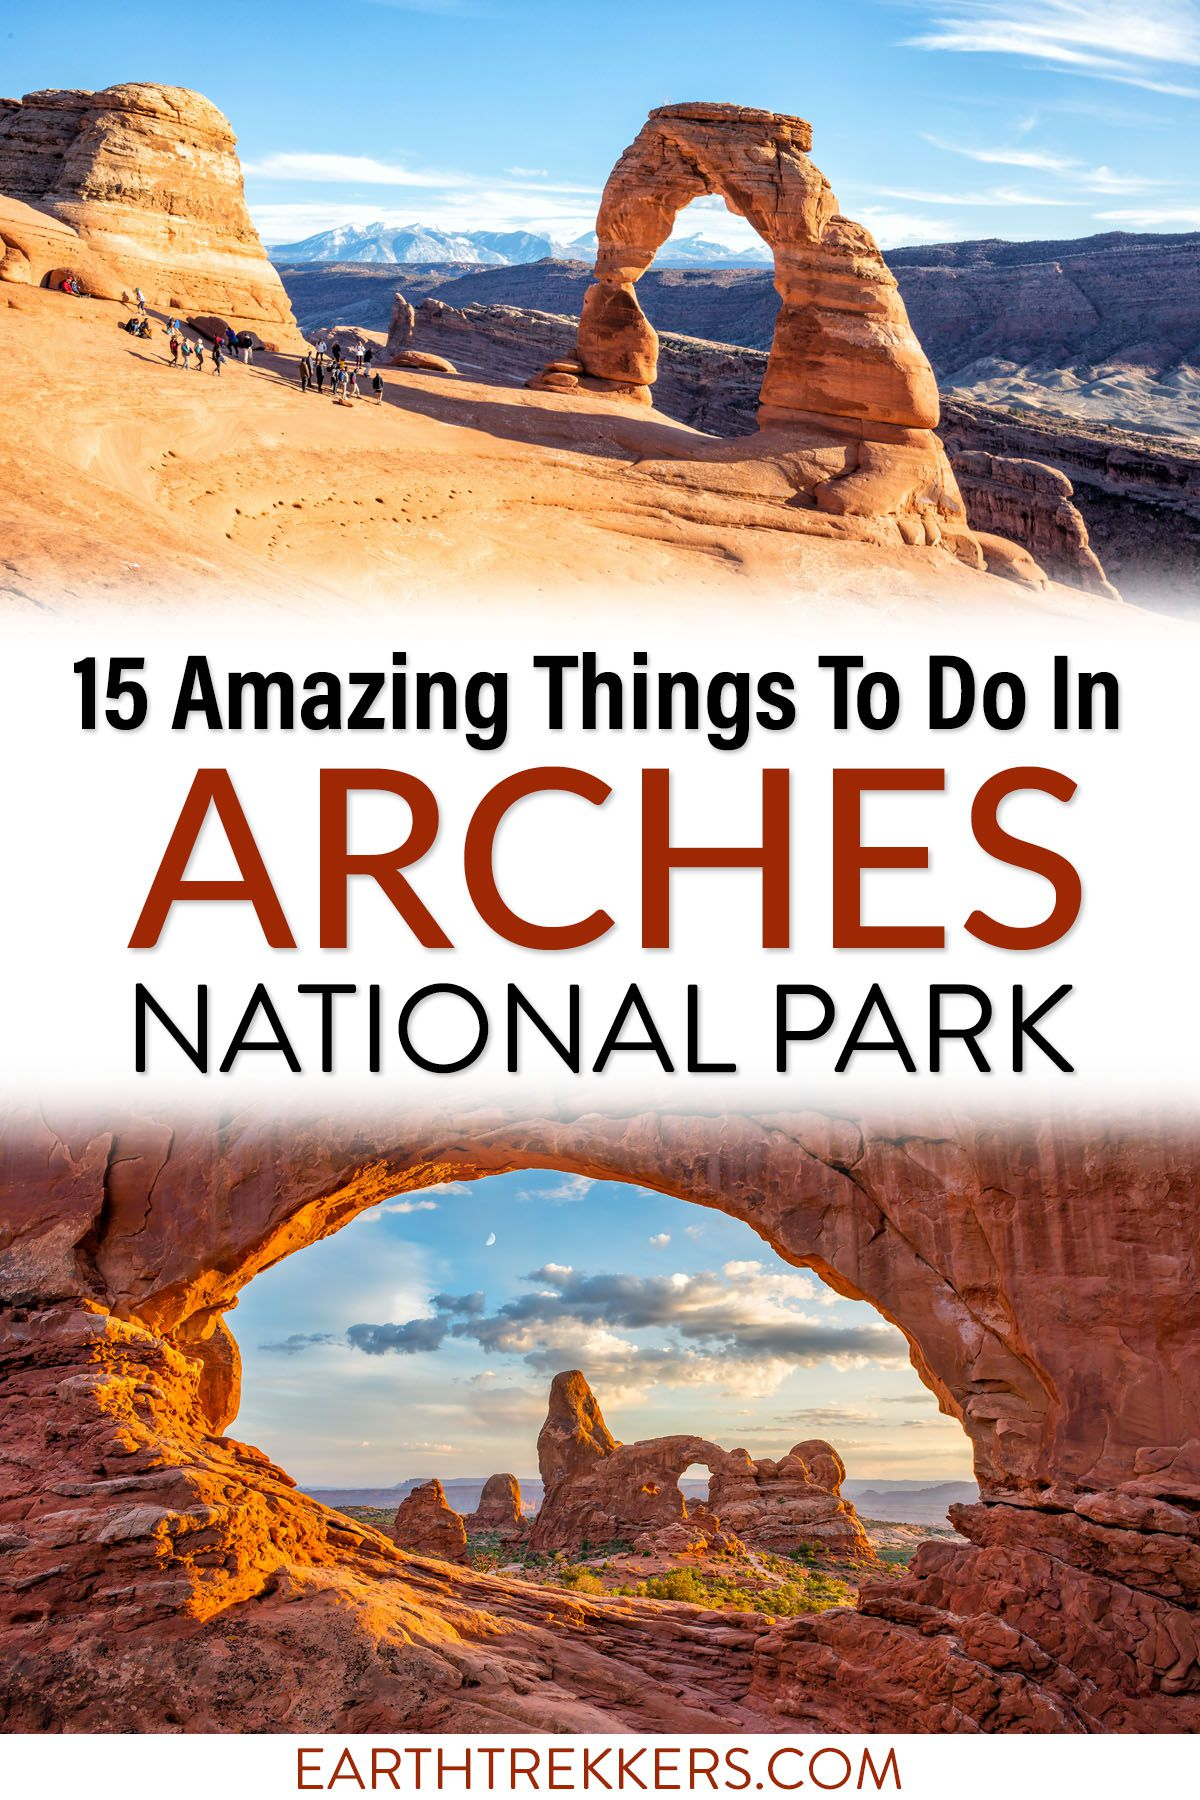 Arches National Park Travel Guide